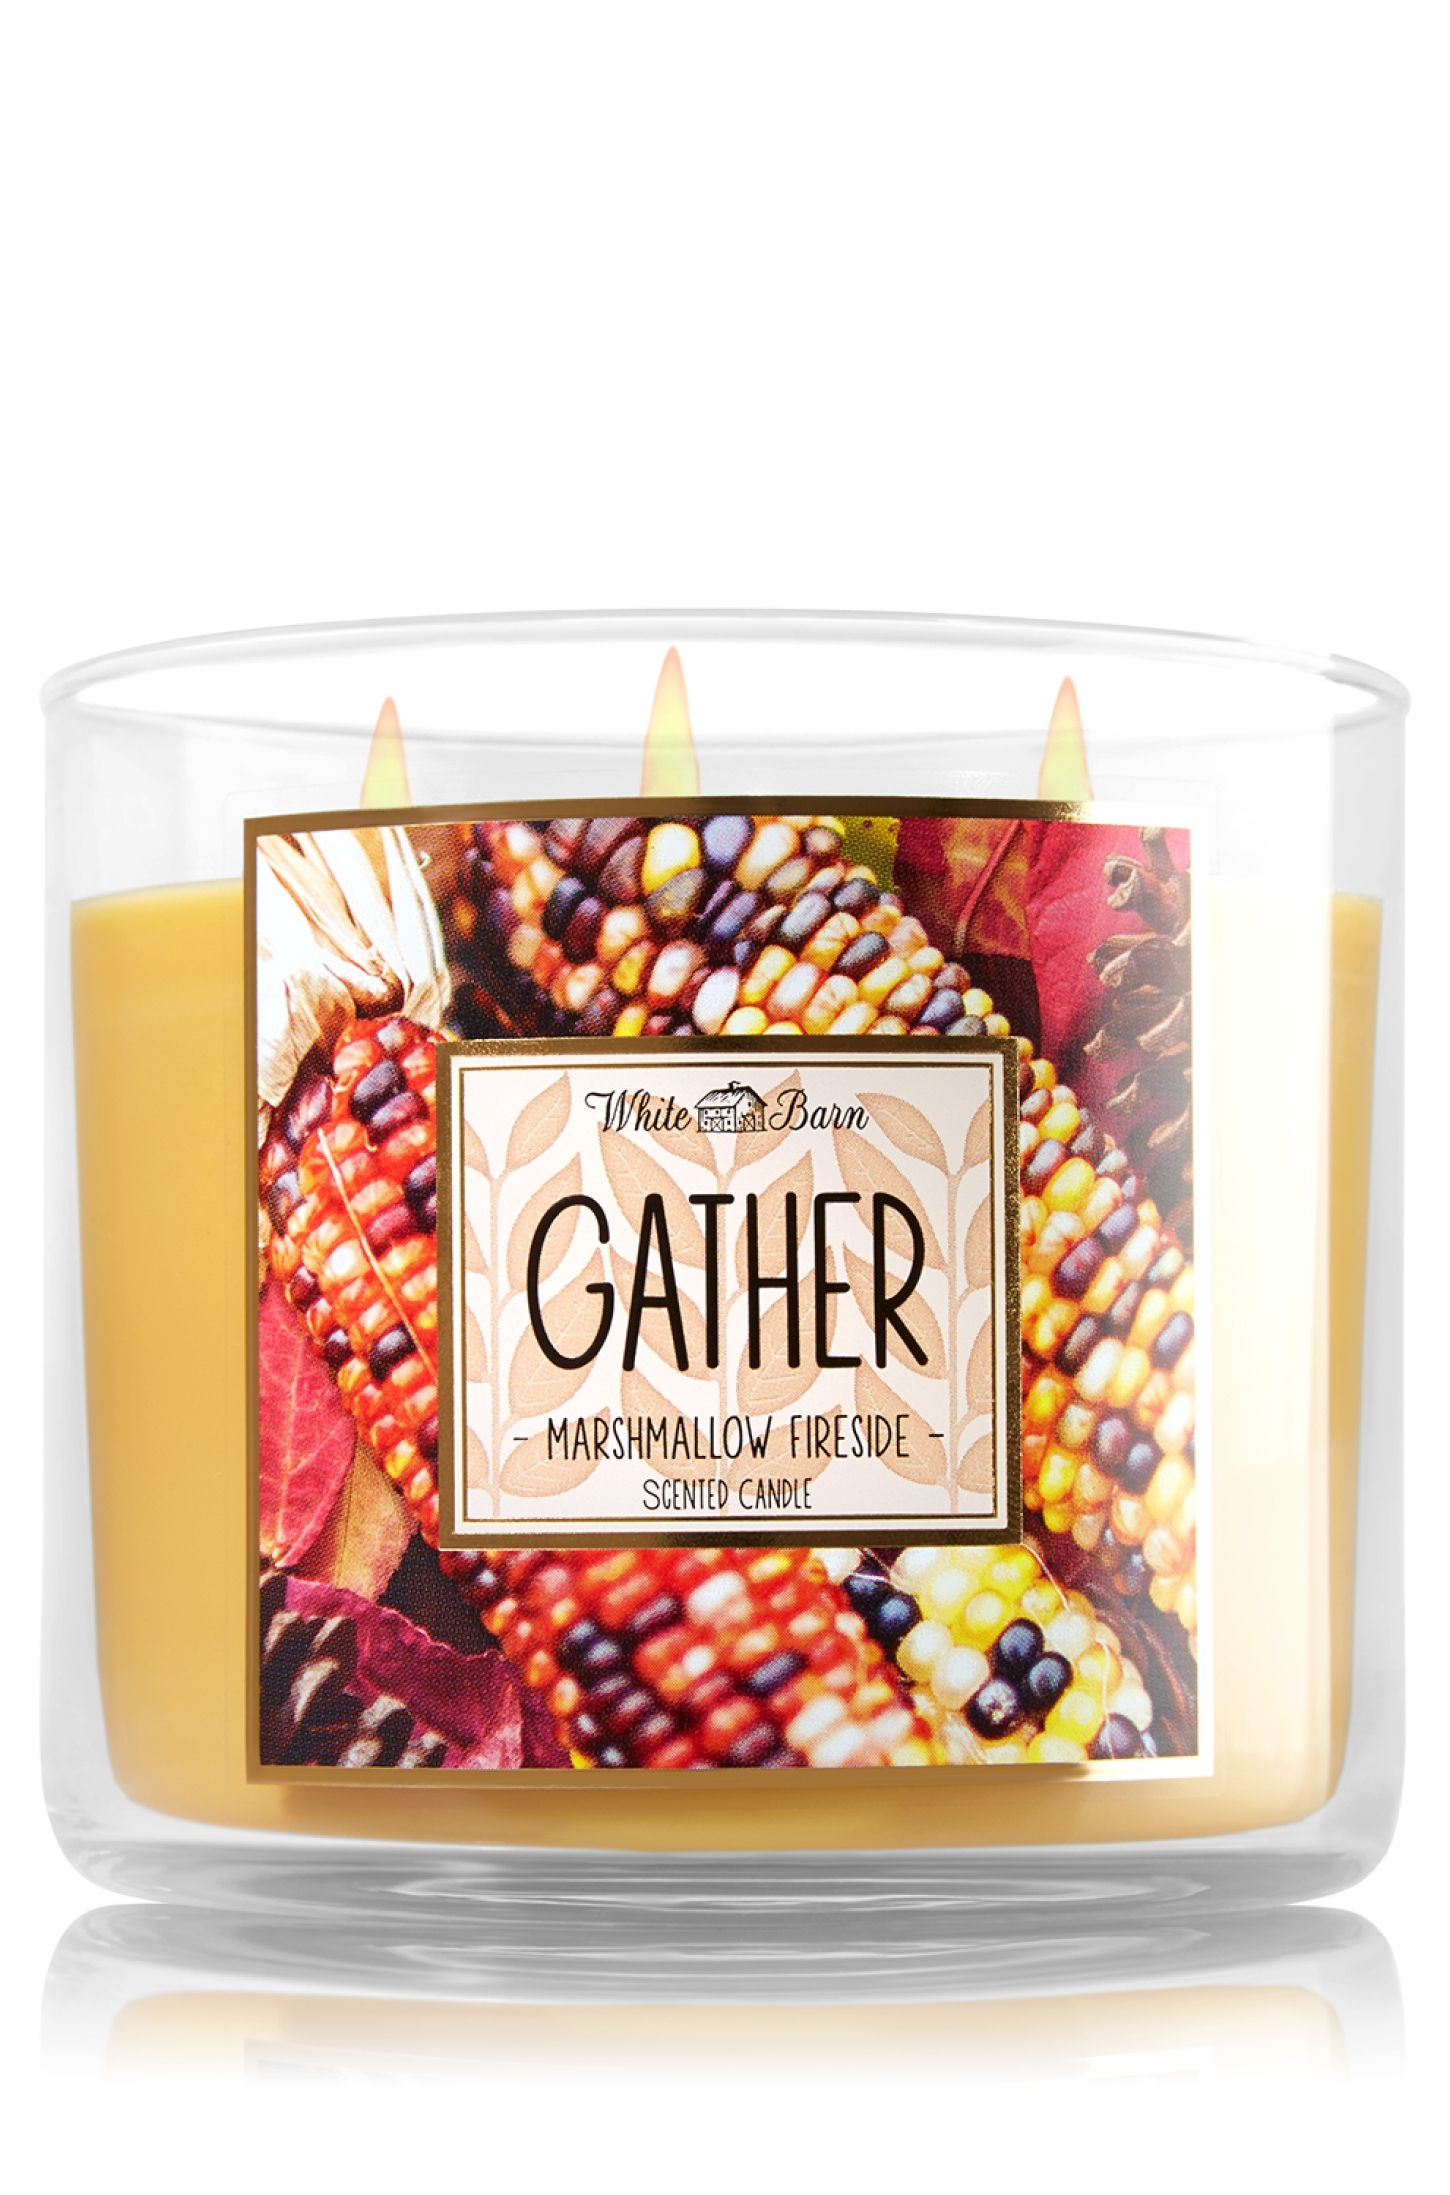 Gather Marshmallow Fireside 3 Wick Candle Home Fragrance